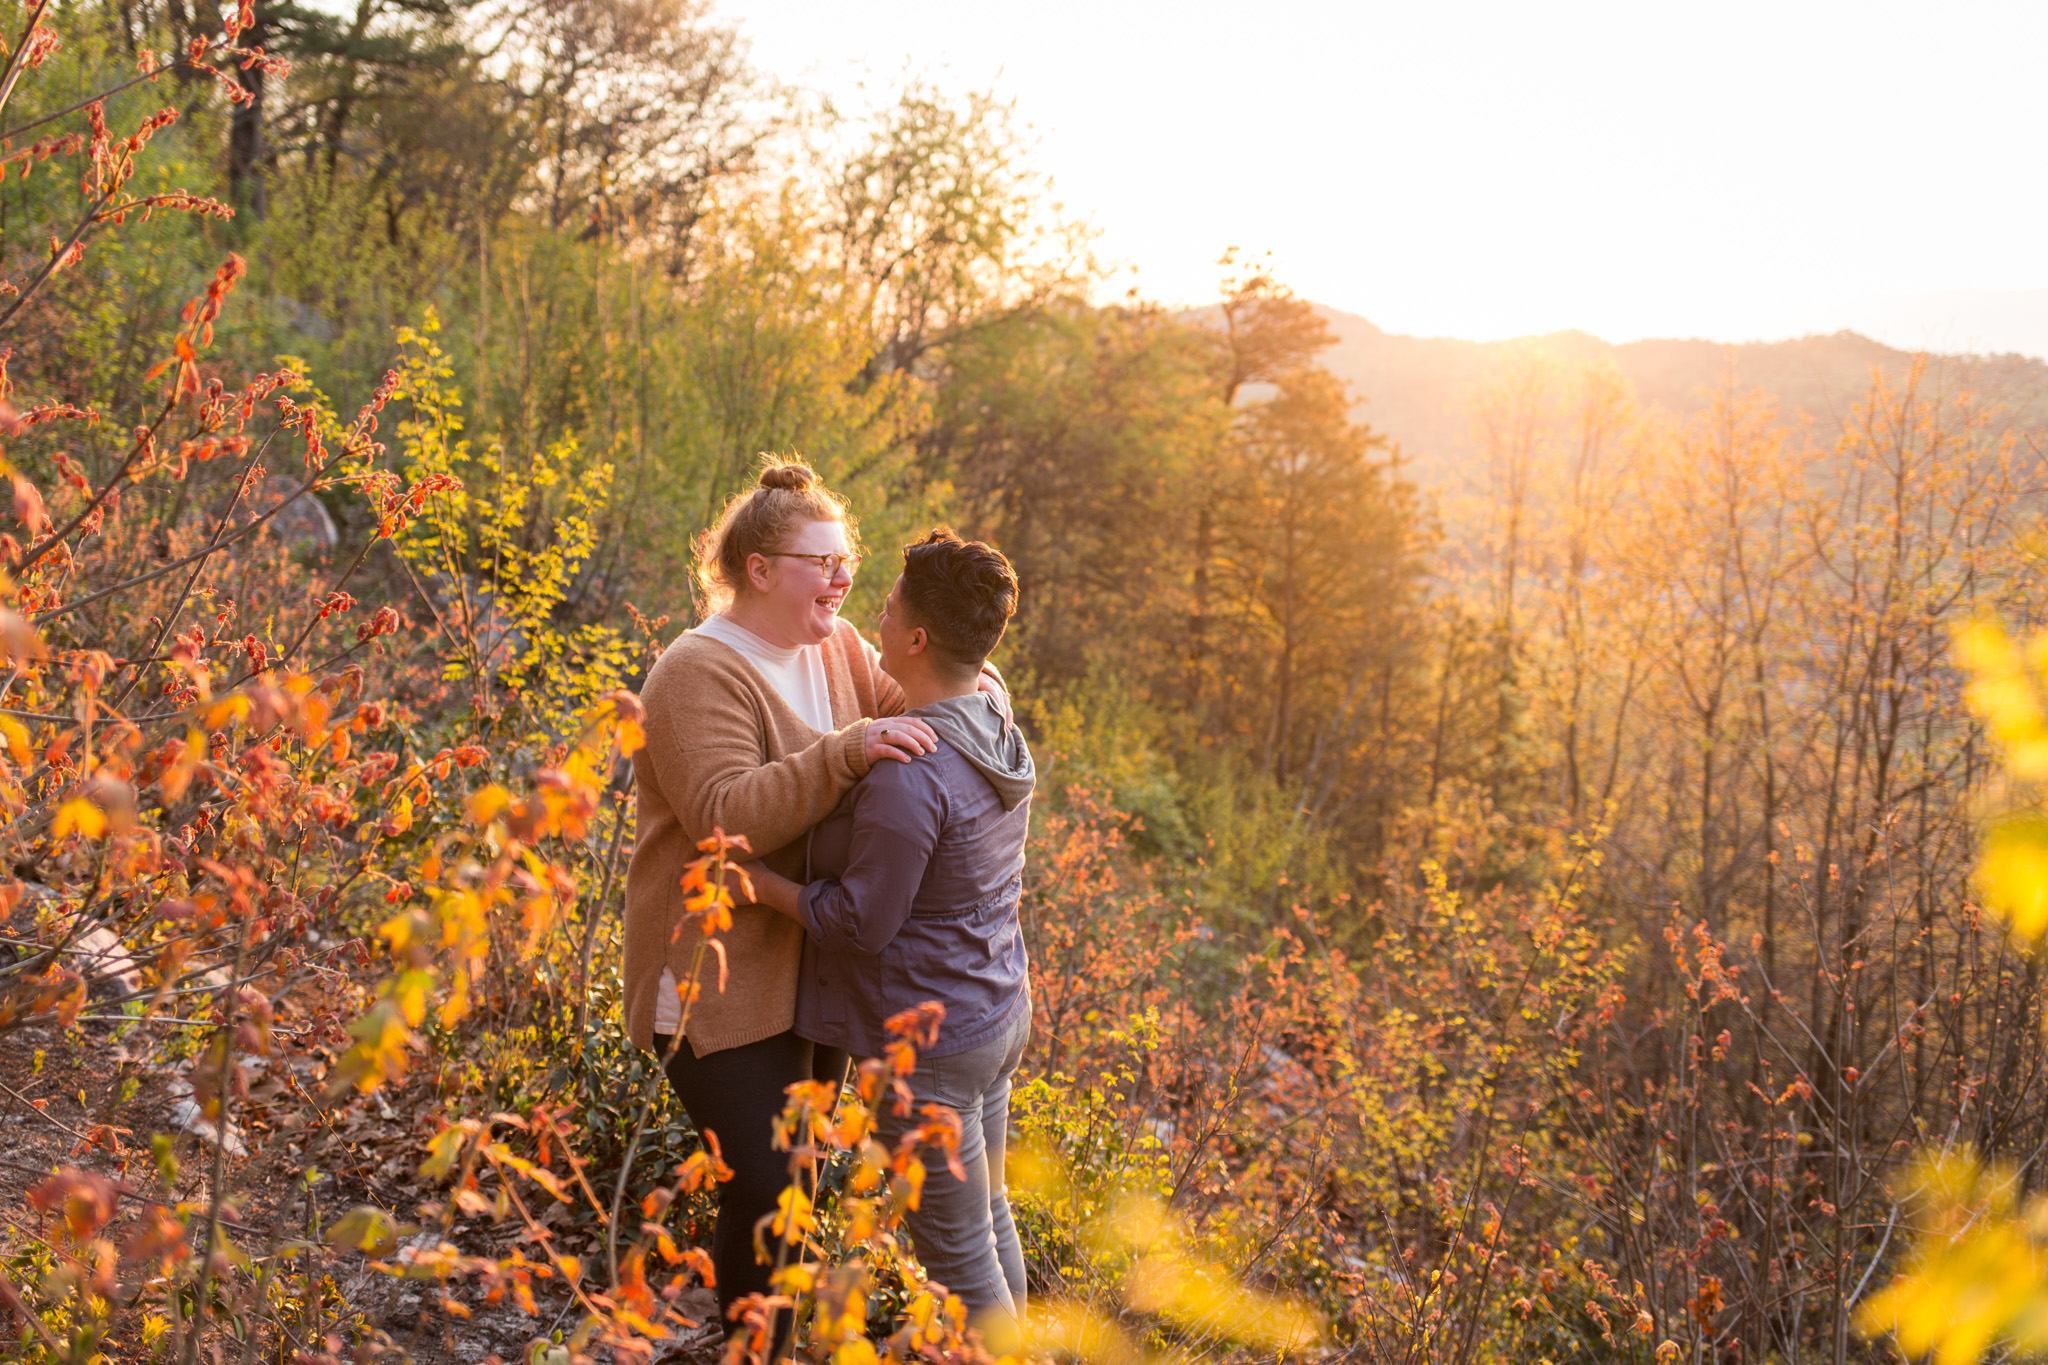 LightCreative_201904_AlexanBecky_Raleigh_Proposal_Photography_026_blog.jpg